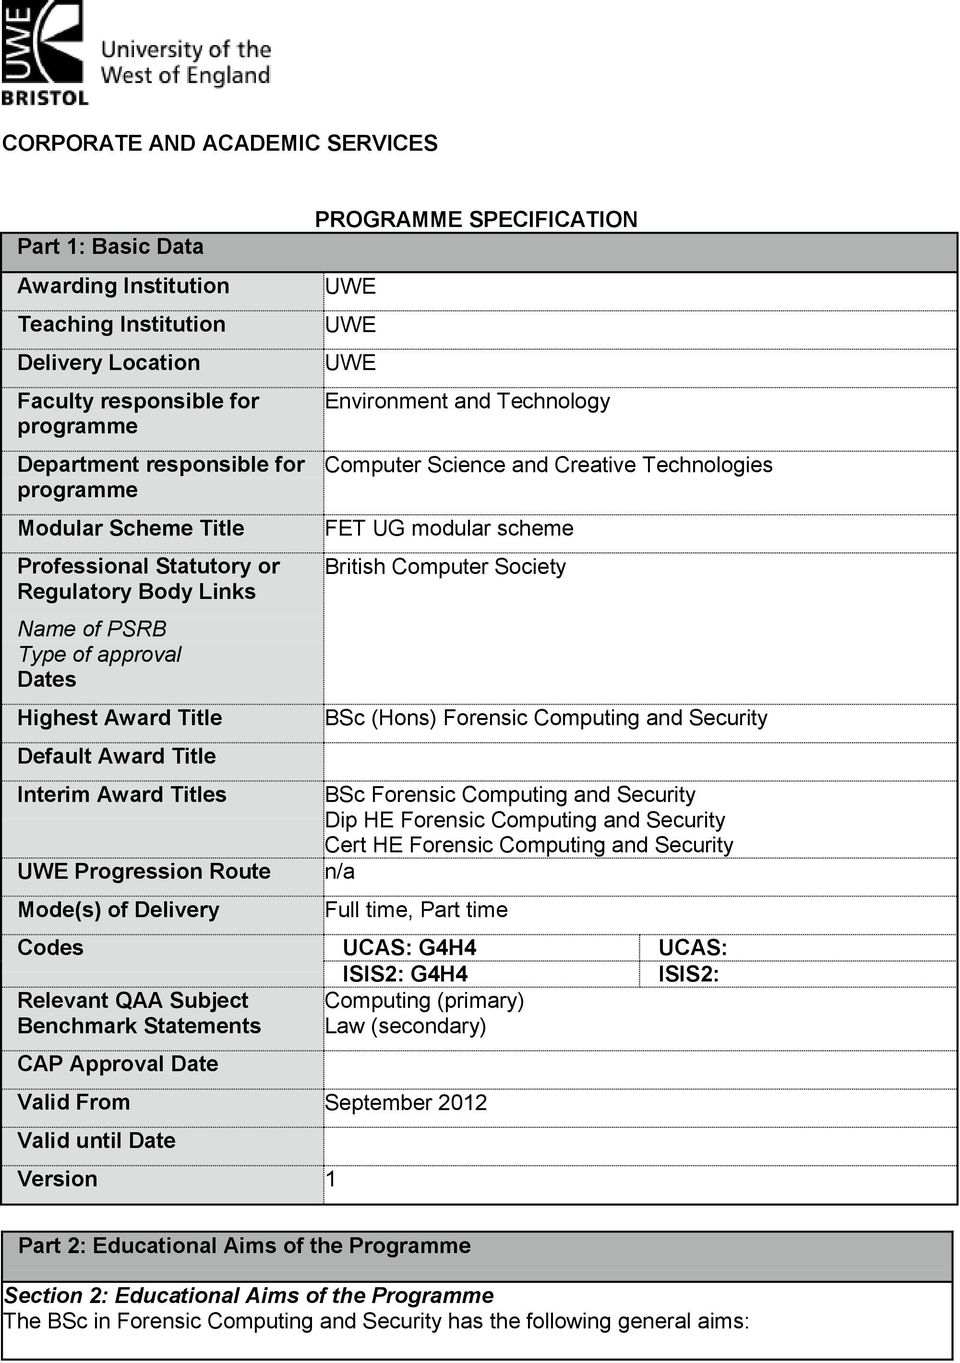 PROGRAMME SPECIFICATION UWE UWE UWE Environment and Technology Computer Science and Creative Technologies FET UG modular scheme British Computer Society BSc (Hons) Forensic Computing and Security BSc